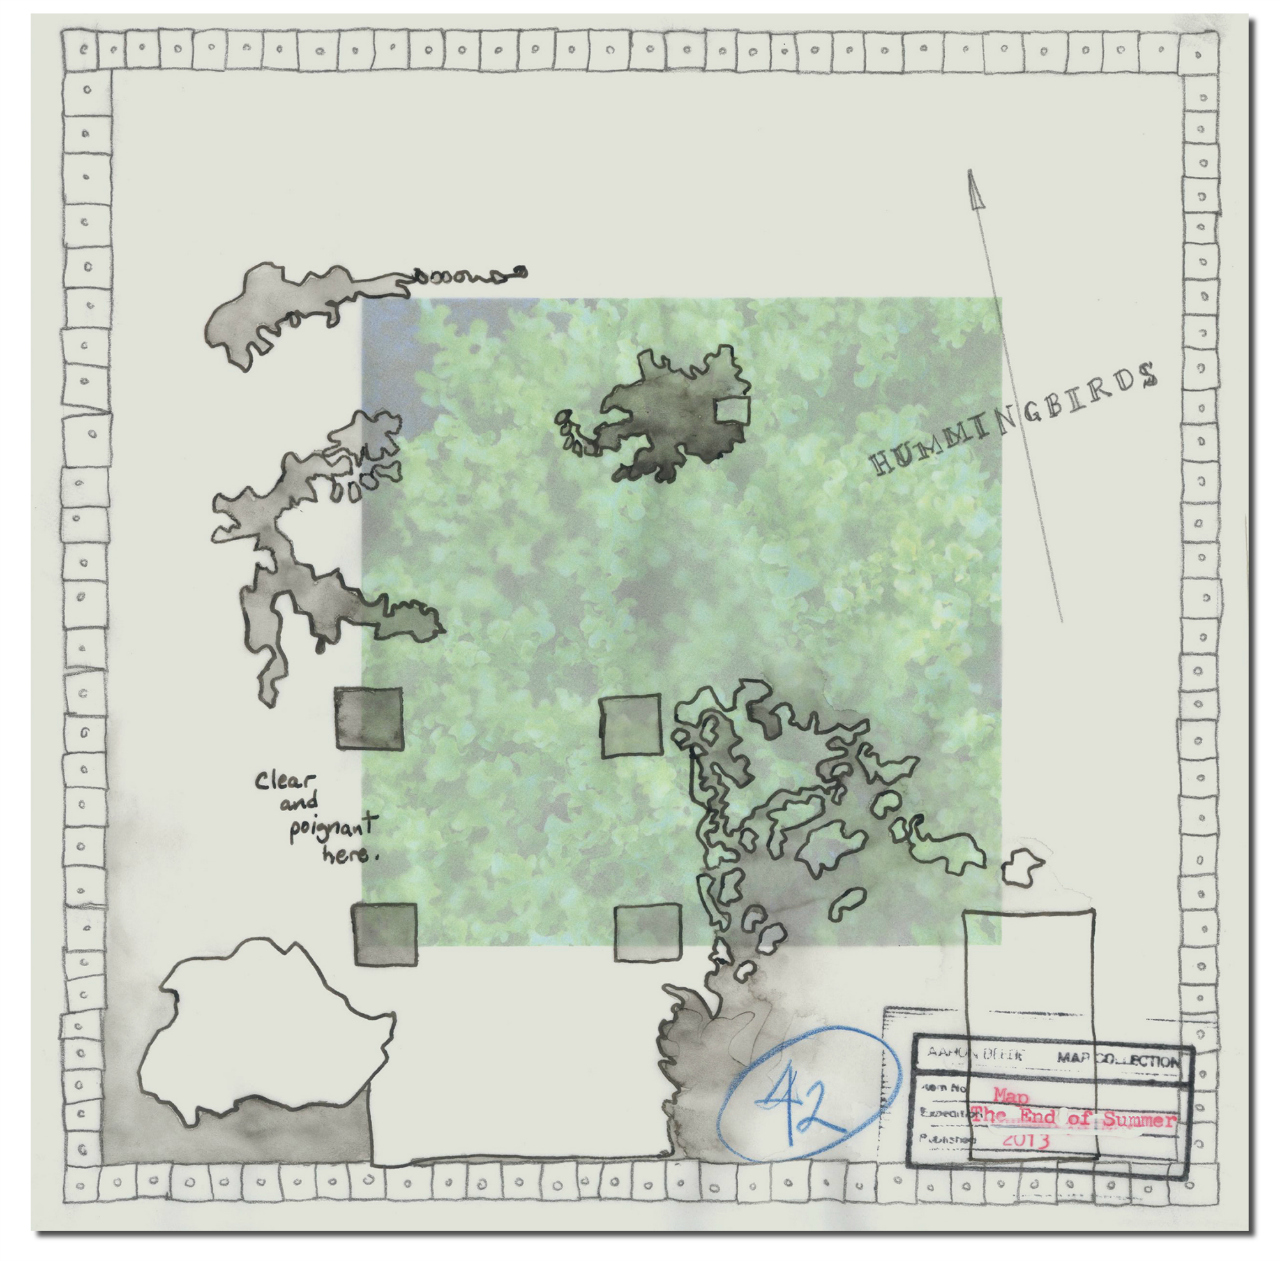 Aaron Beebe, Map, The End of Summer, 2013